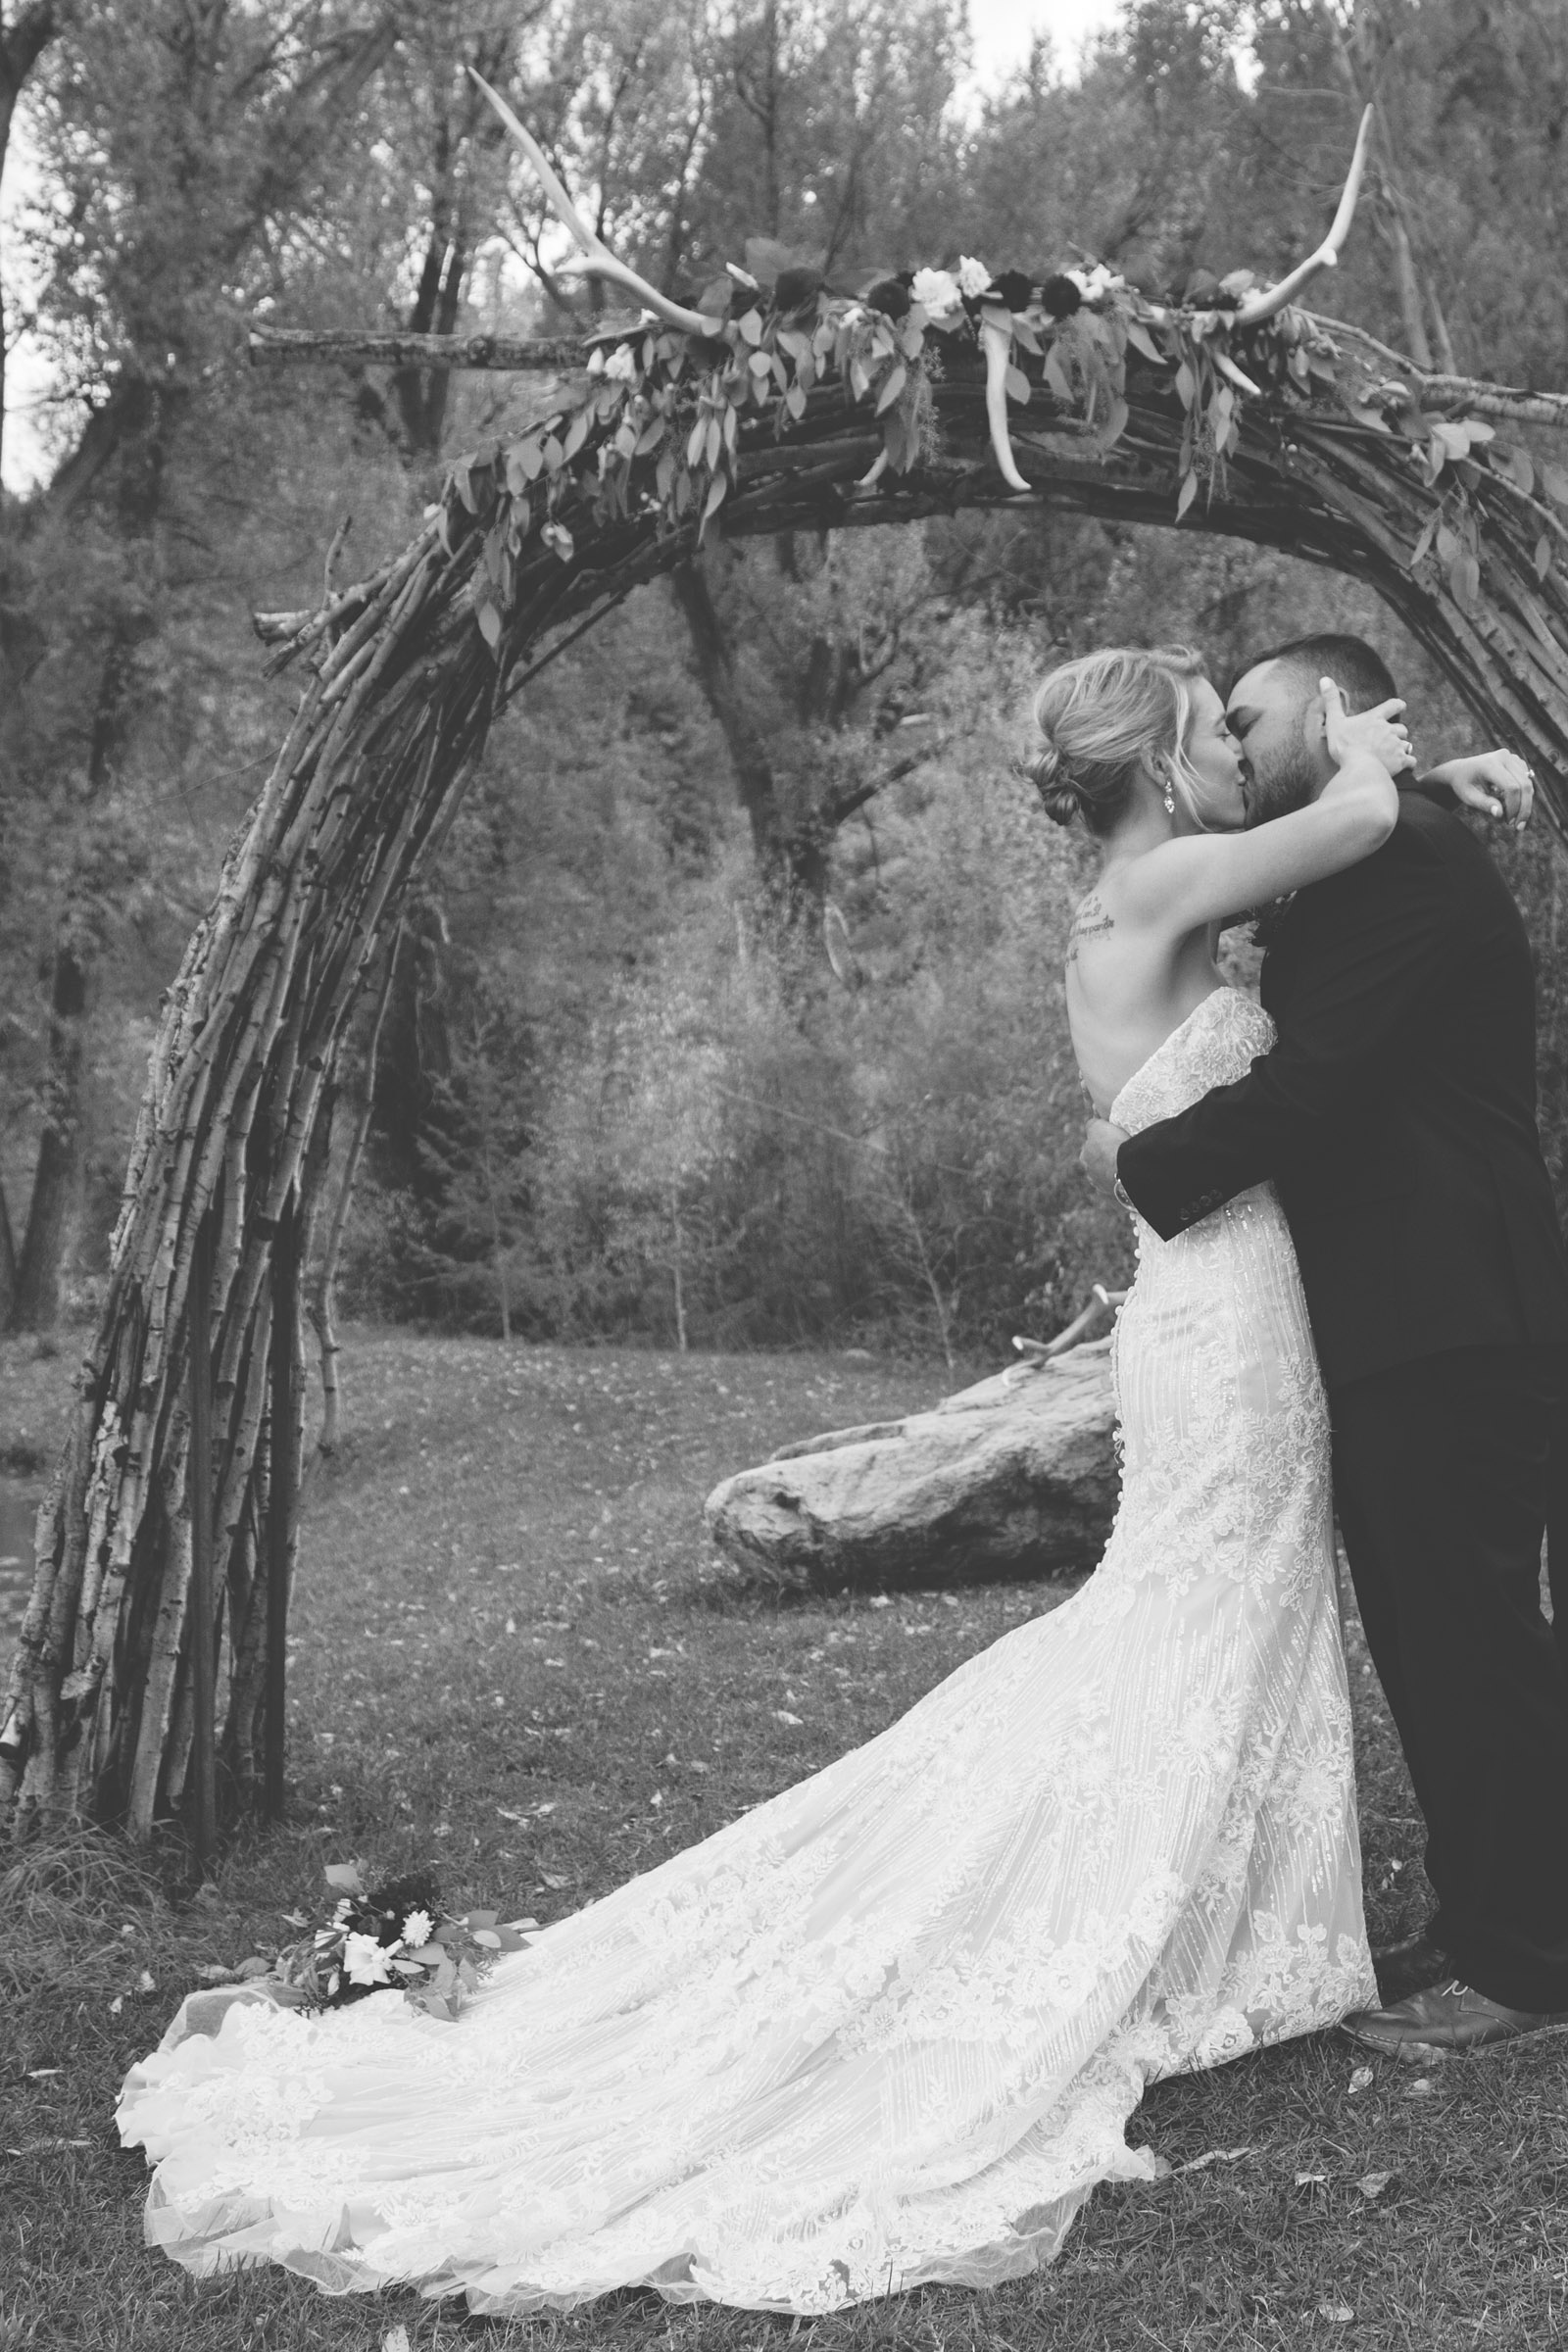 bride and groom first kiss during private elopement wedding ceremony in durango co forest